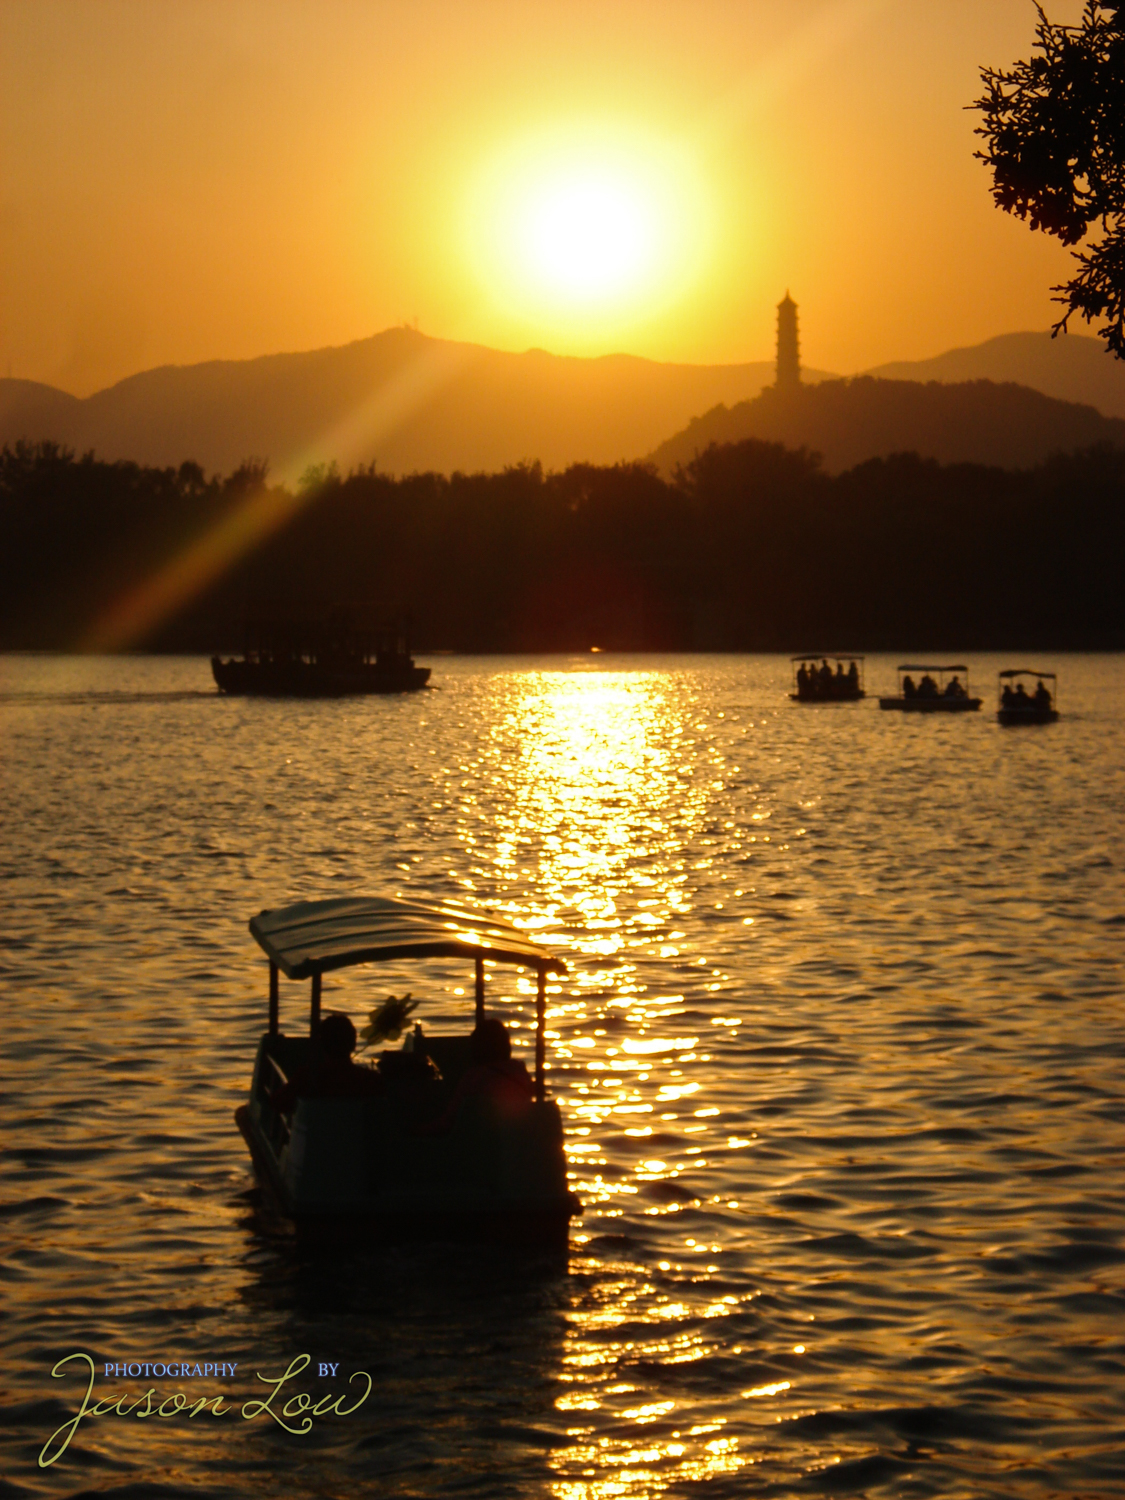 Sunset at  颐和园 (Summer Palace) in Beijing, China.